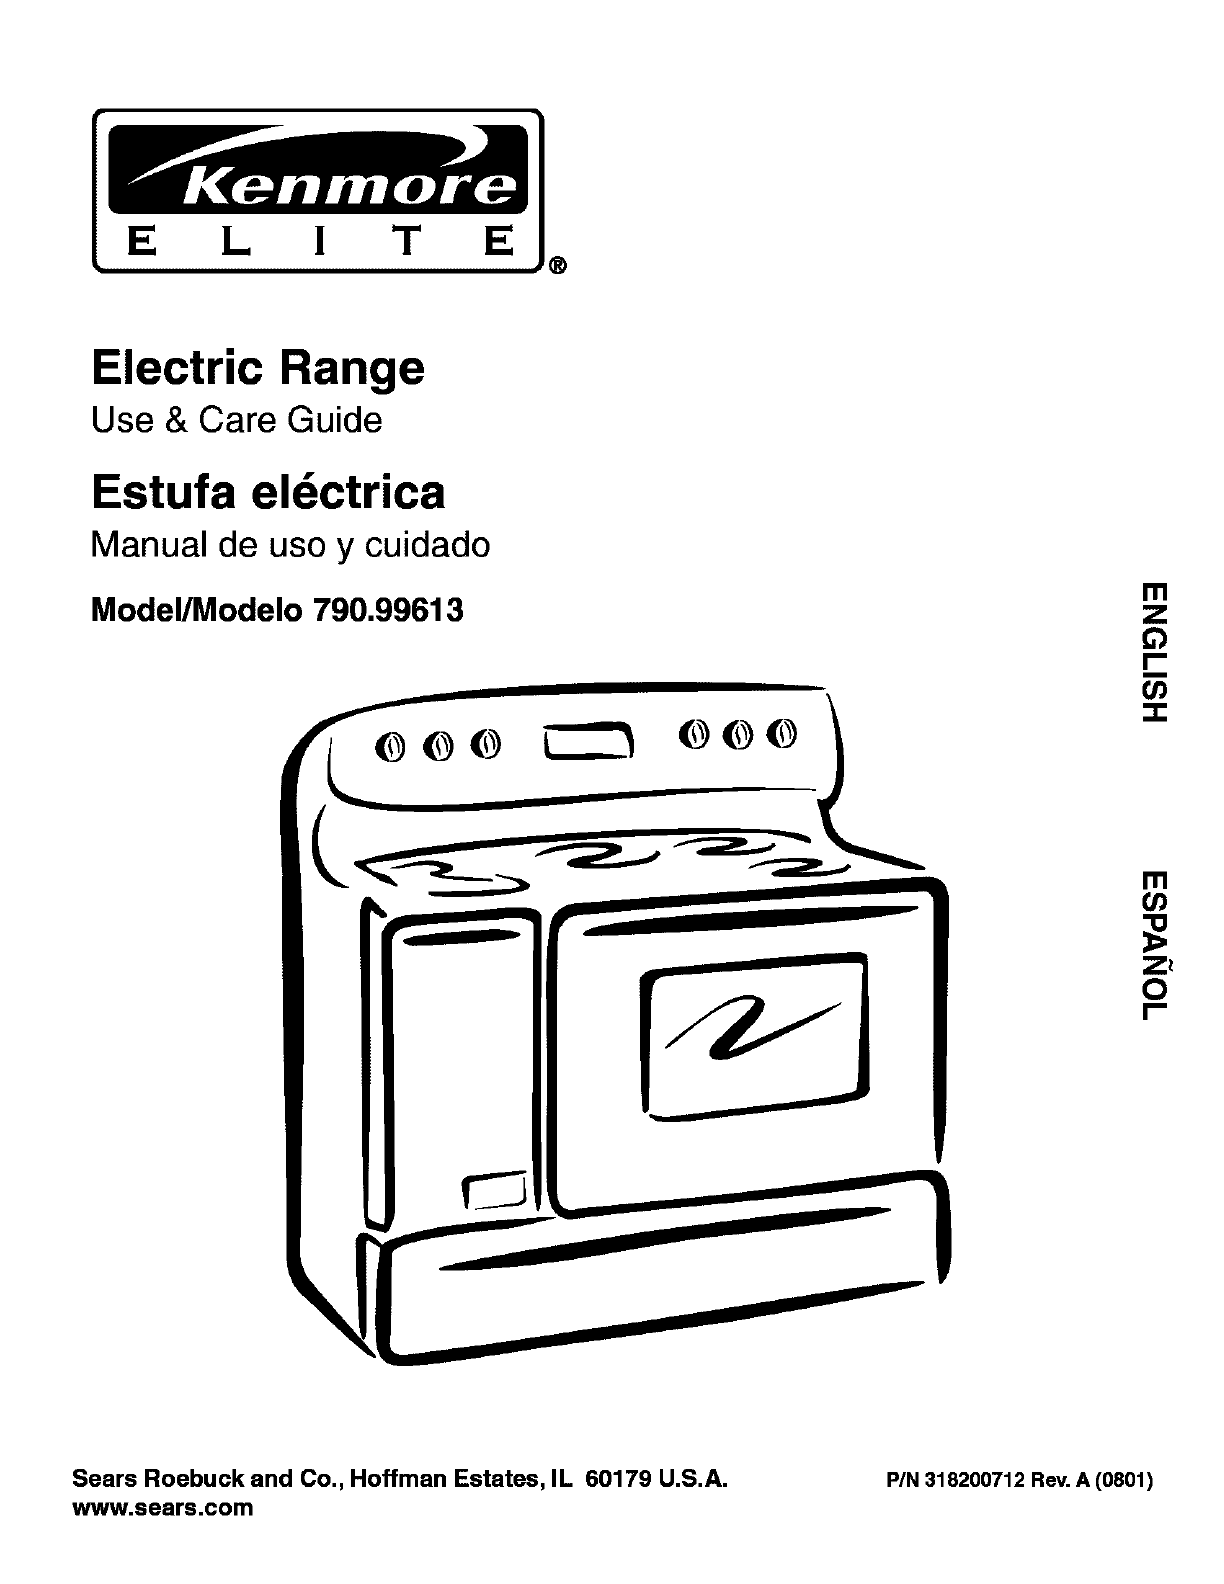 Kenmore Oven Kenmore Oven User Manual